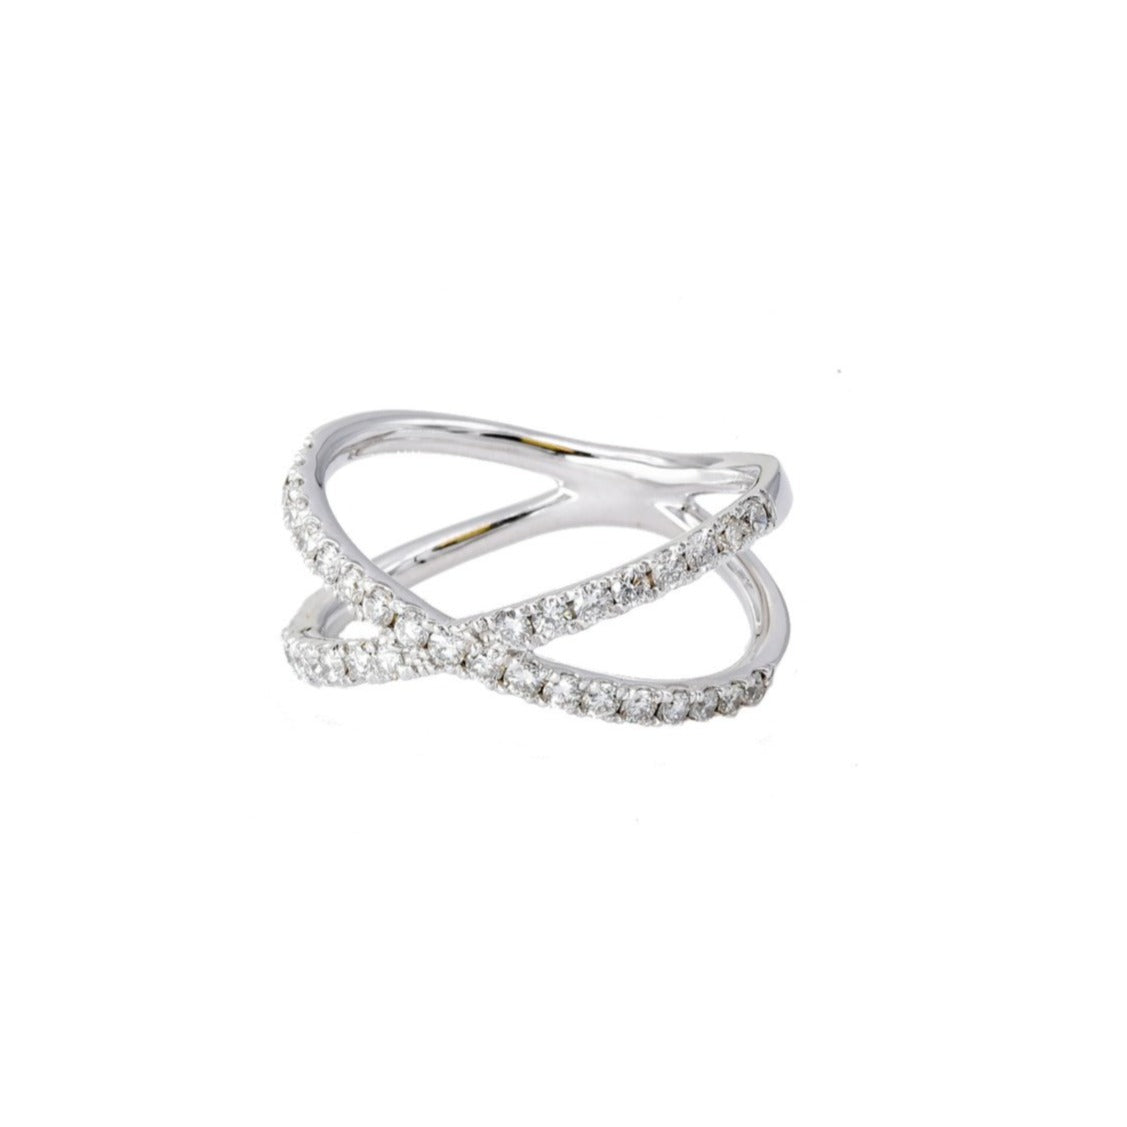 White Gold X Ring - Lesley Ann Jewels